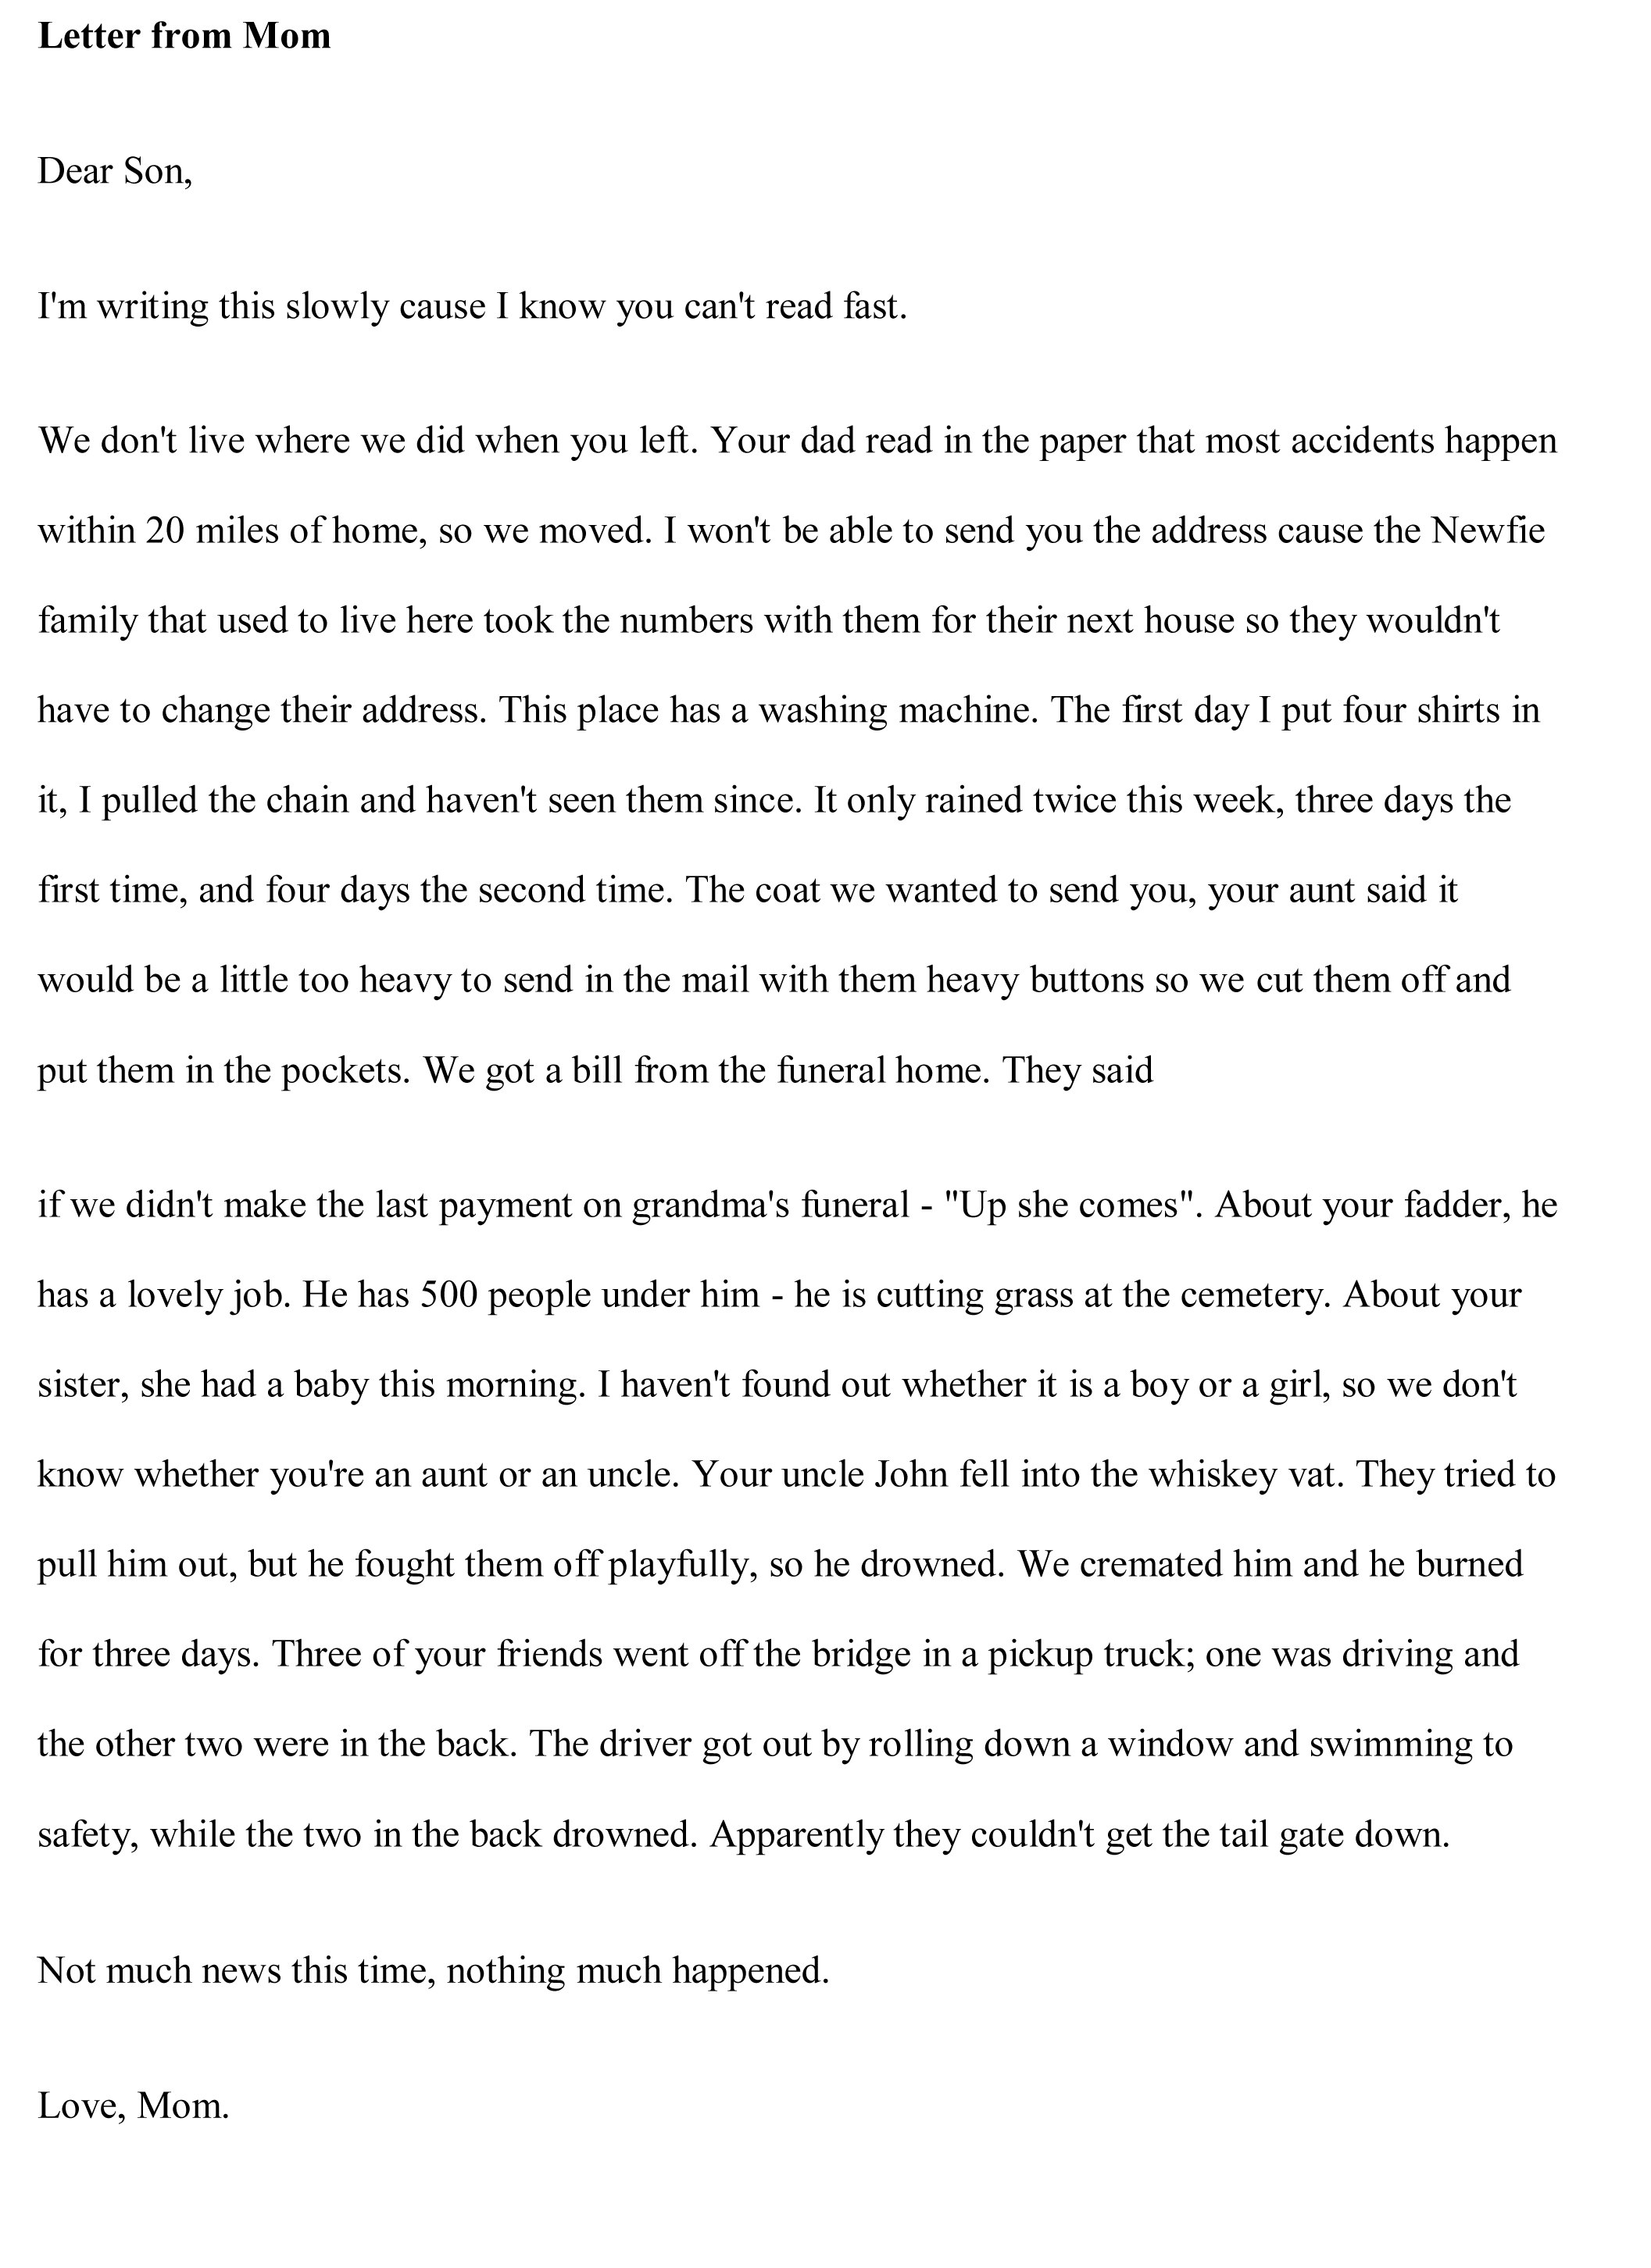 005 Research Paper Funny Essay Free Sample Topics To Do Marvelous A On Full